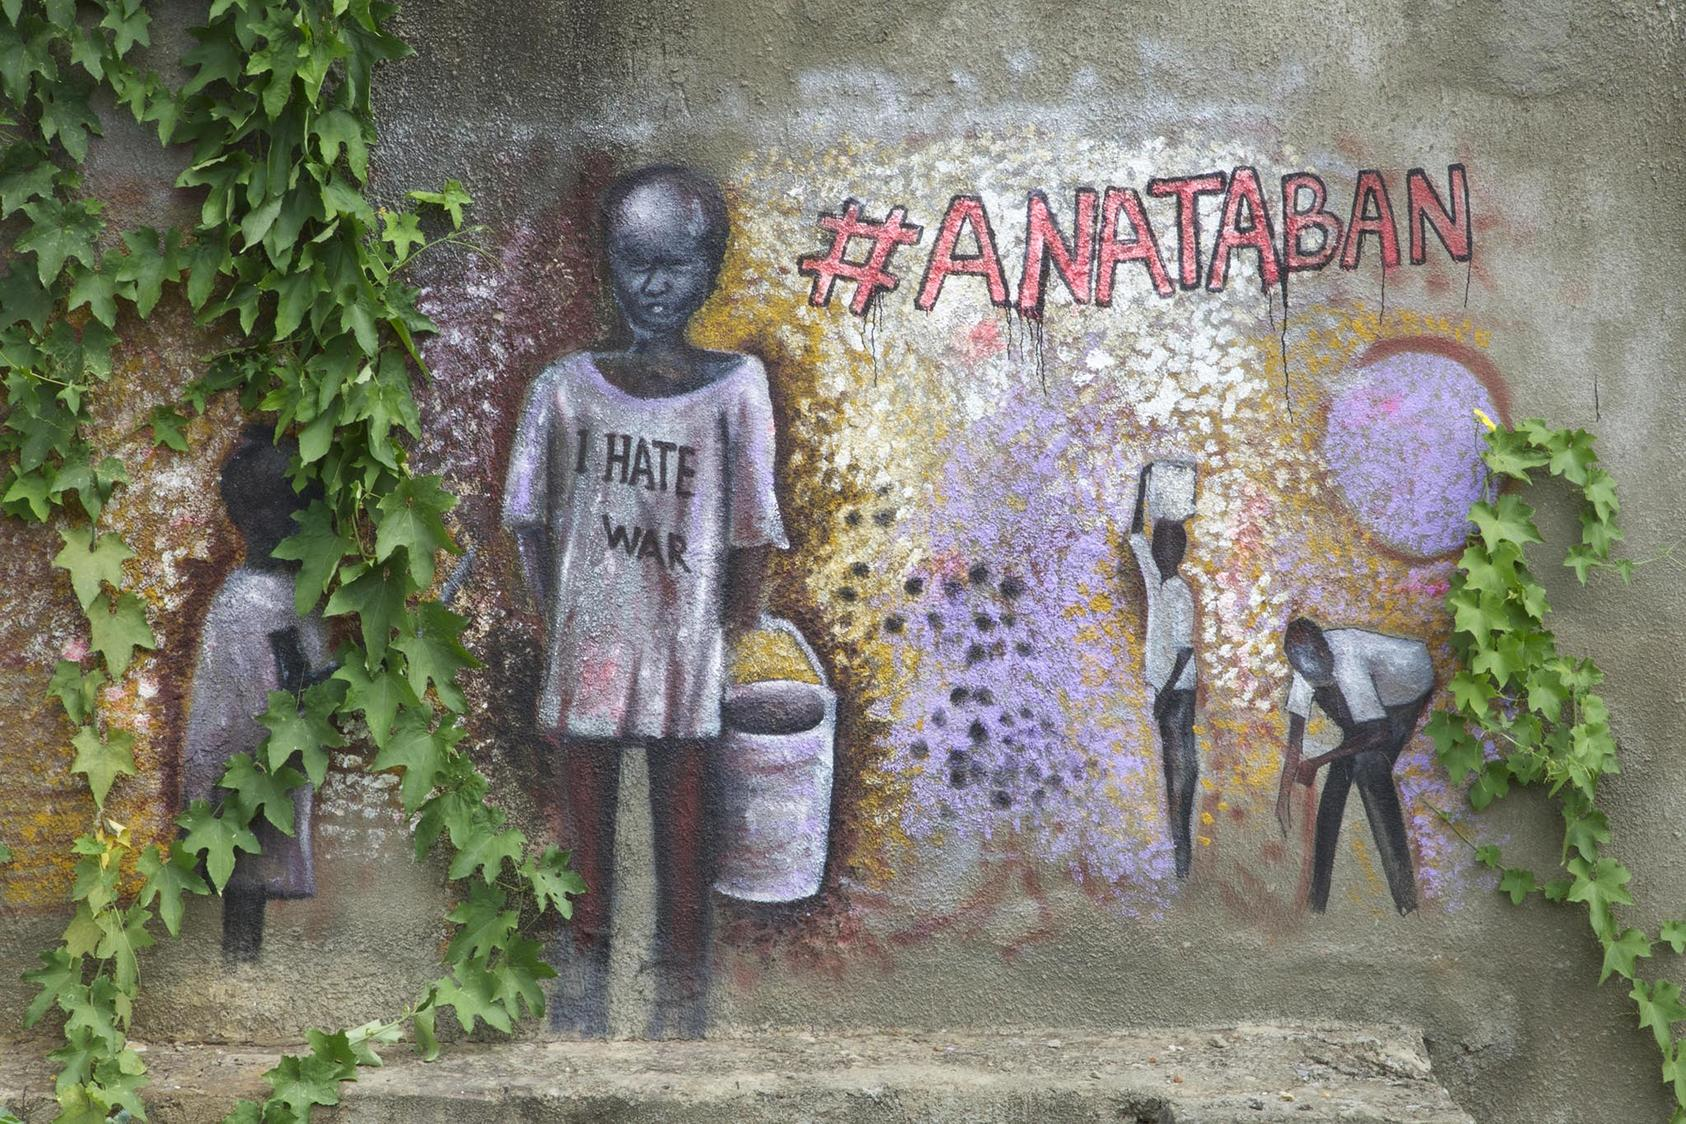 Anataban Street Art in Juba, South Sudan